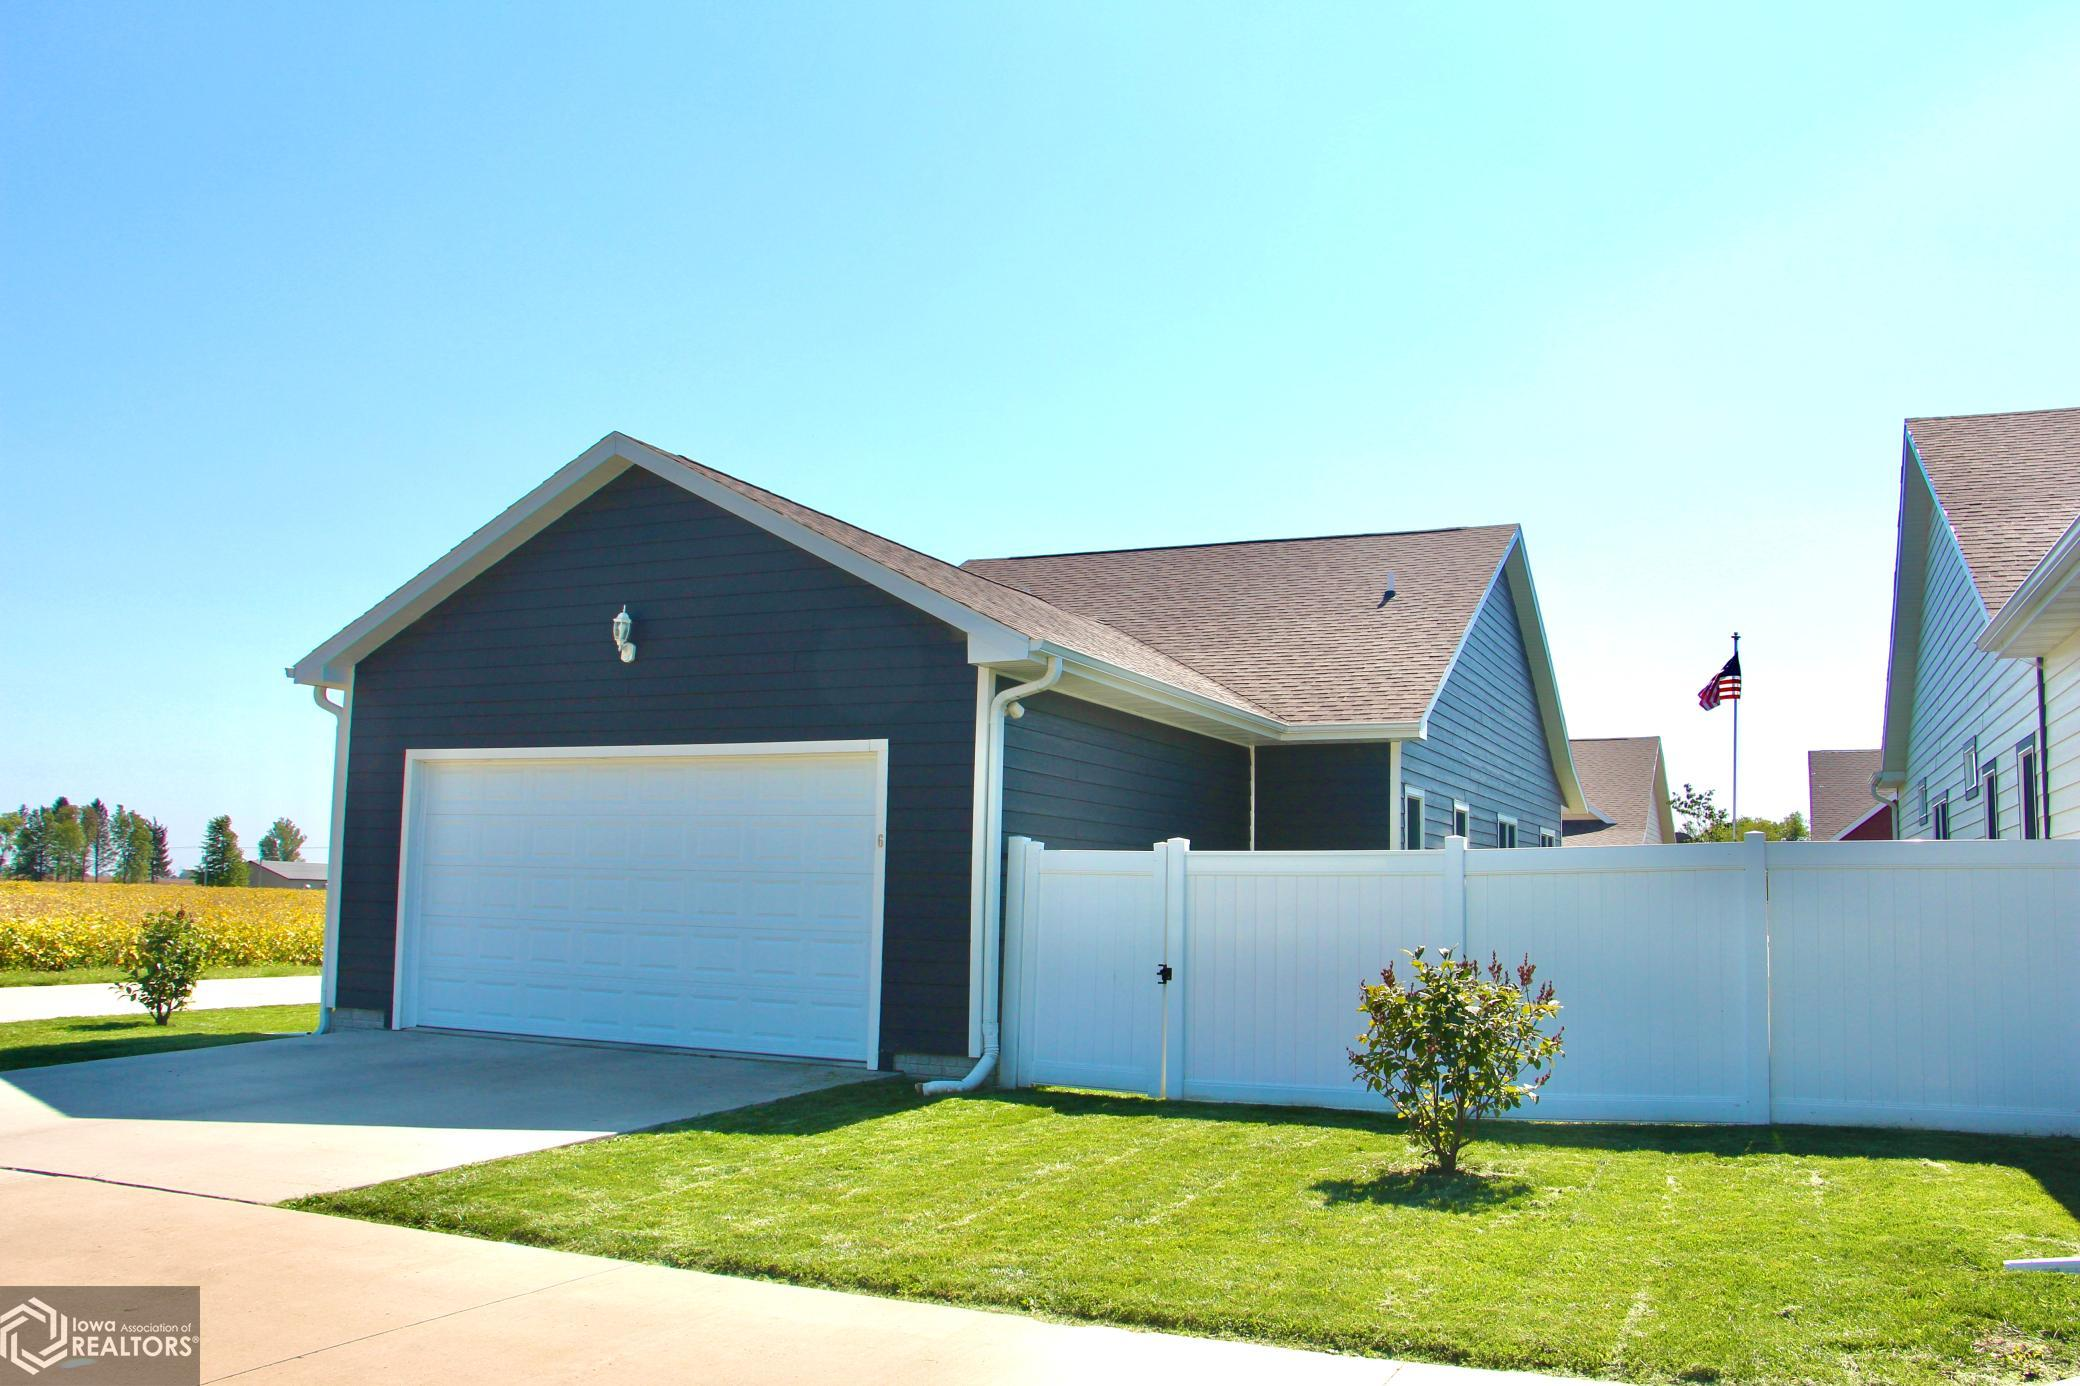 6 Garden Cottage, Grinnell, Iowa 50112-2302, 3 Bedrooms Bedrooms, ,1 BathroomBathrooms,Single Family,For Sale,Garden Cottage,6101509